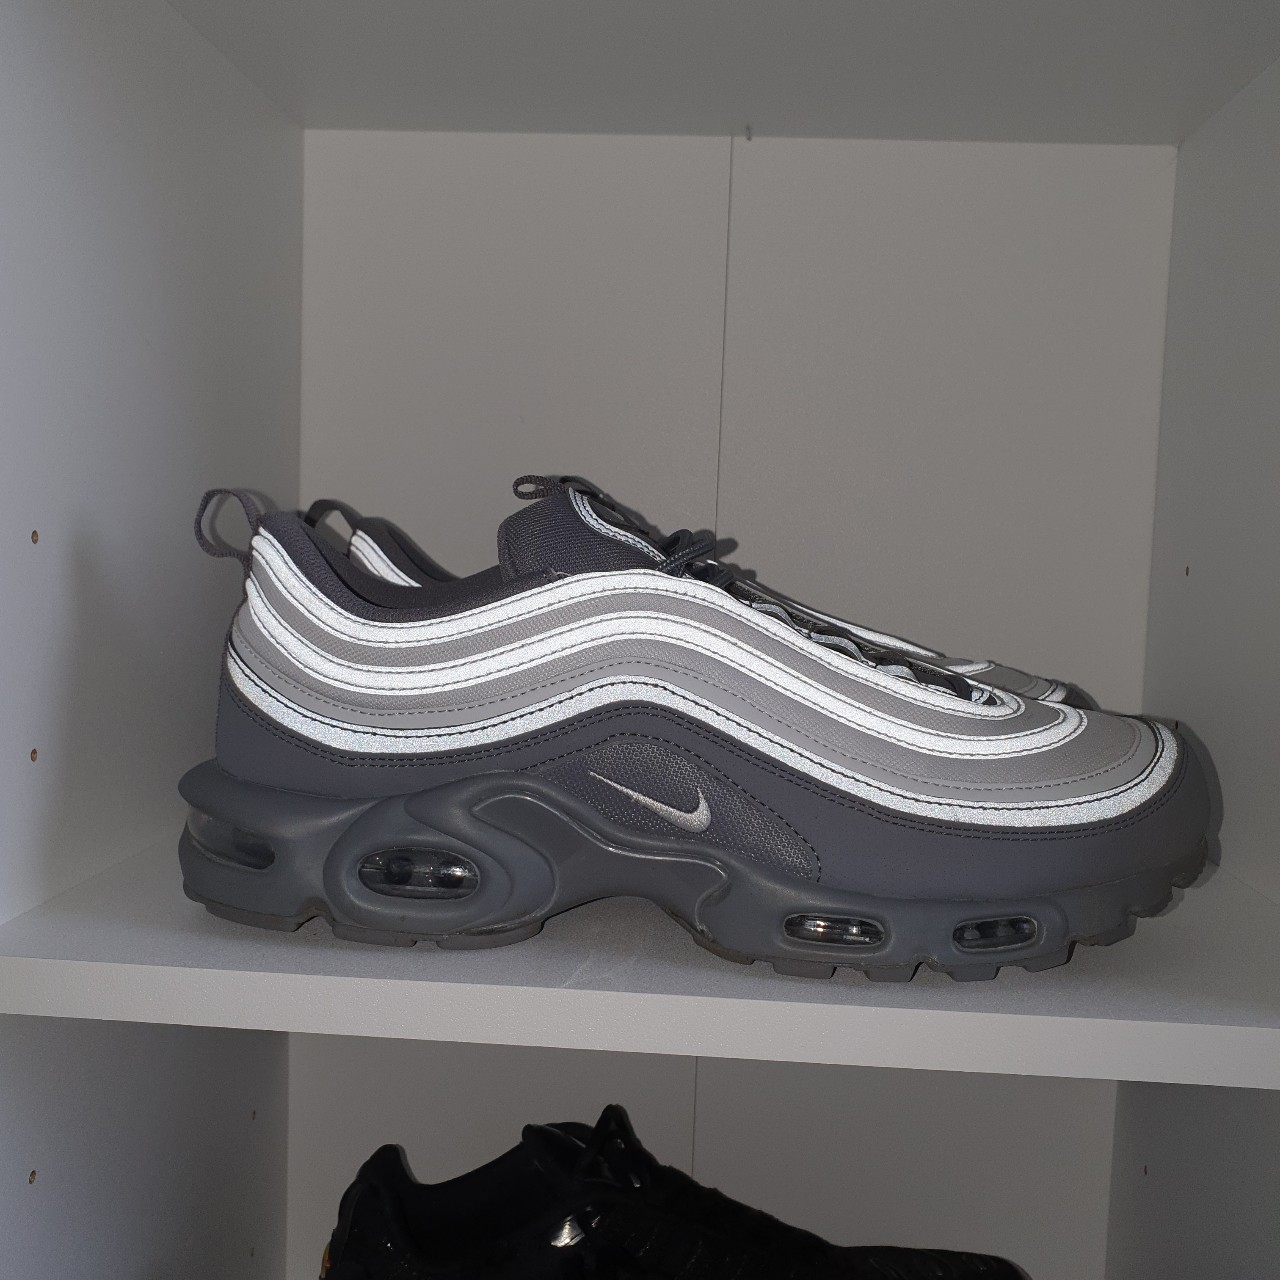 Nike Air Max Plus 97 Size 10